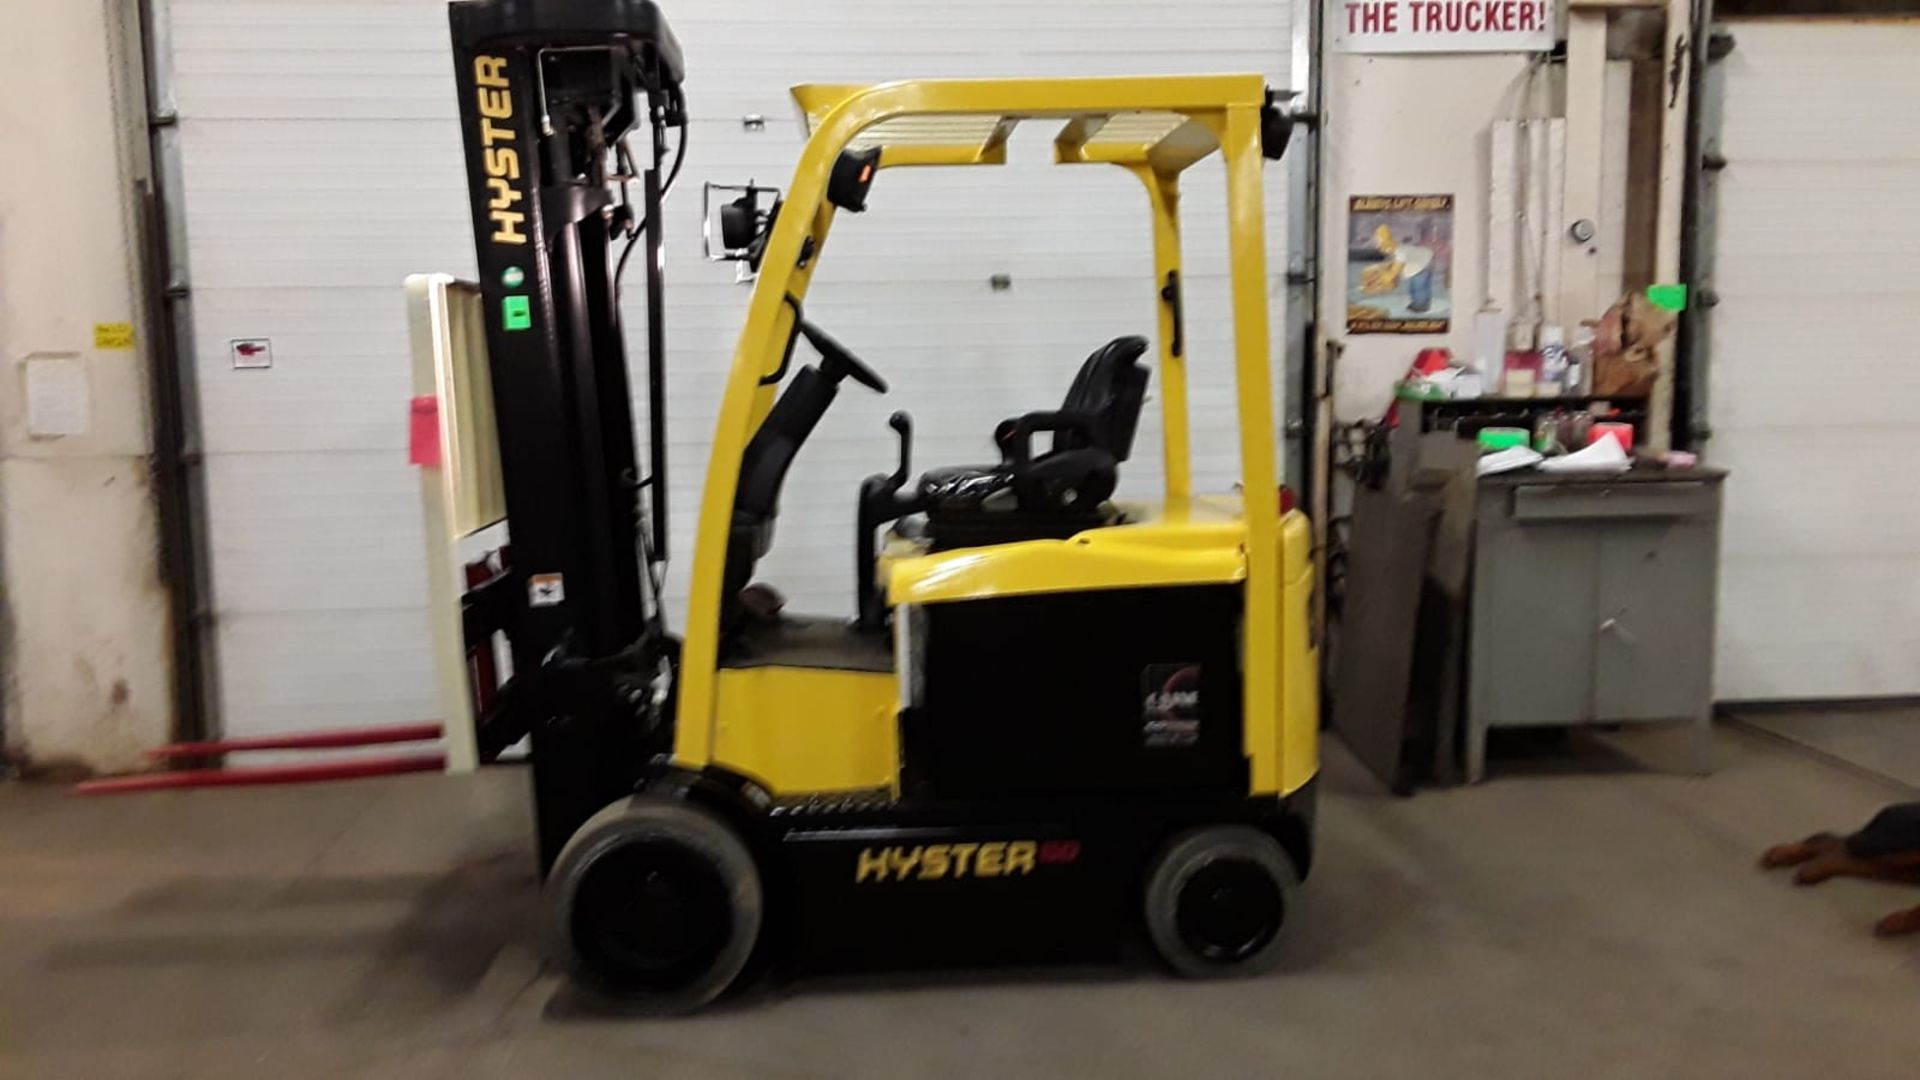 FREE CUSTOMS - 2011 Hyster 5000lbs Capacity Forklift Electric with 4-STAGE MAST with sideshift